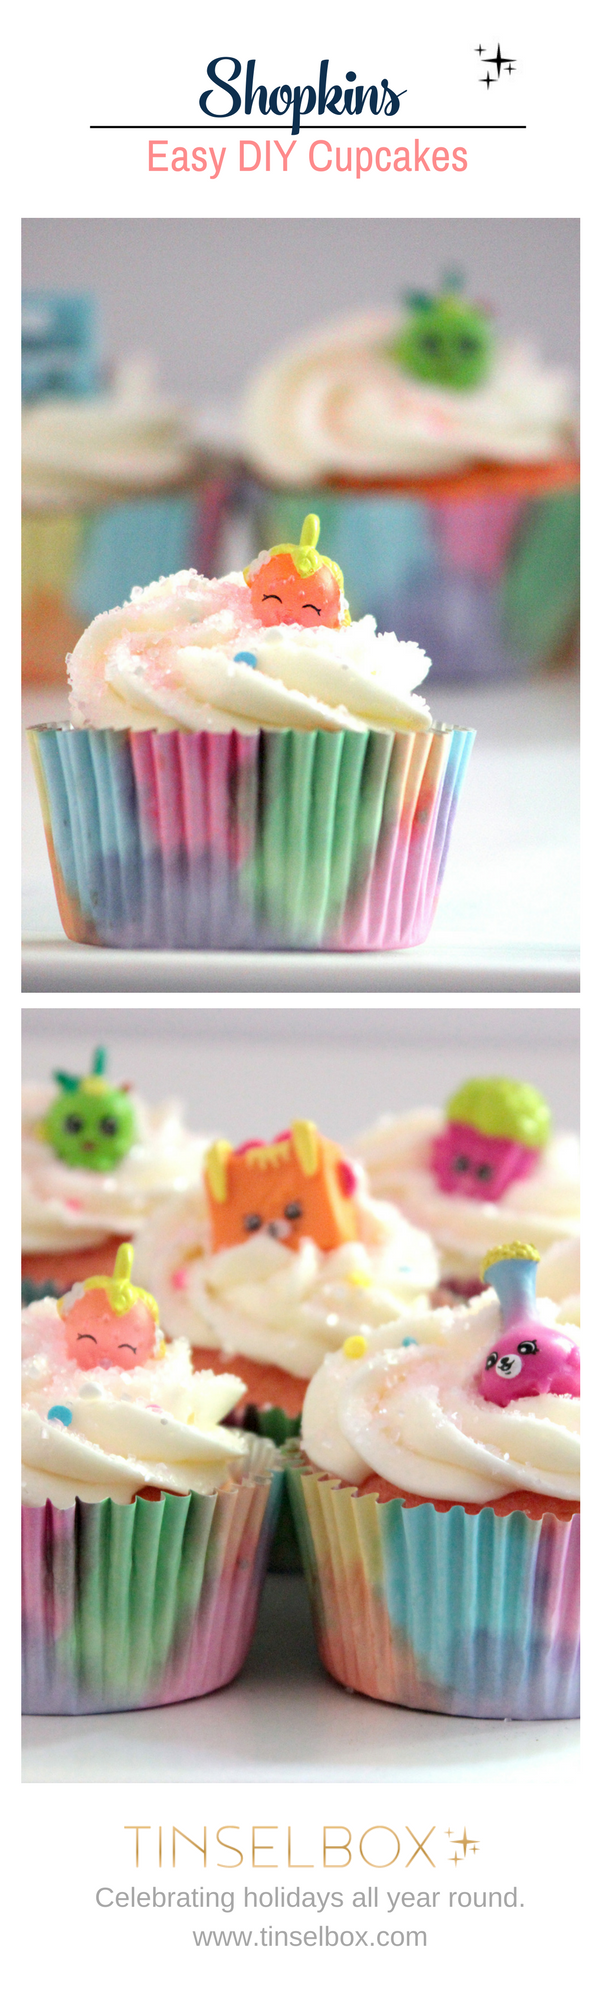 Shopkins Easy DIY Cupcakes - Simple and delicious